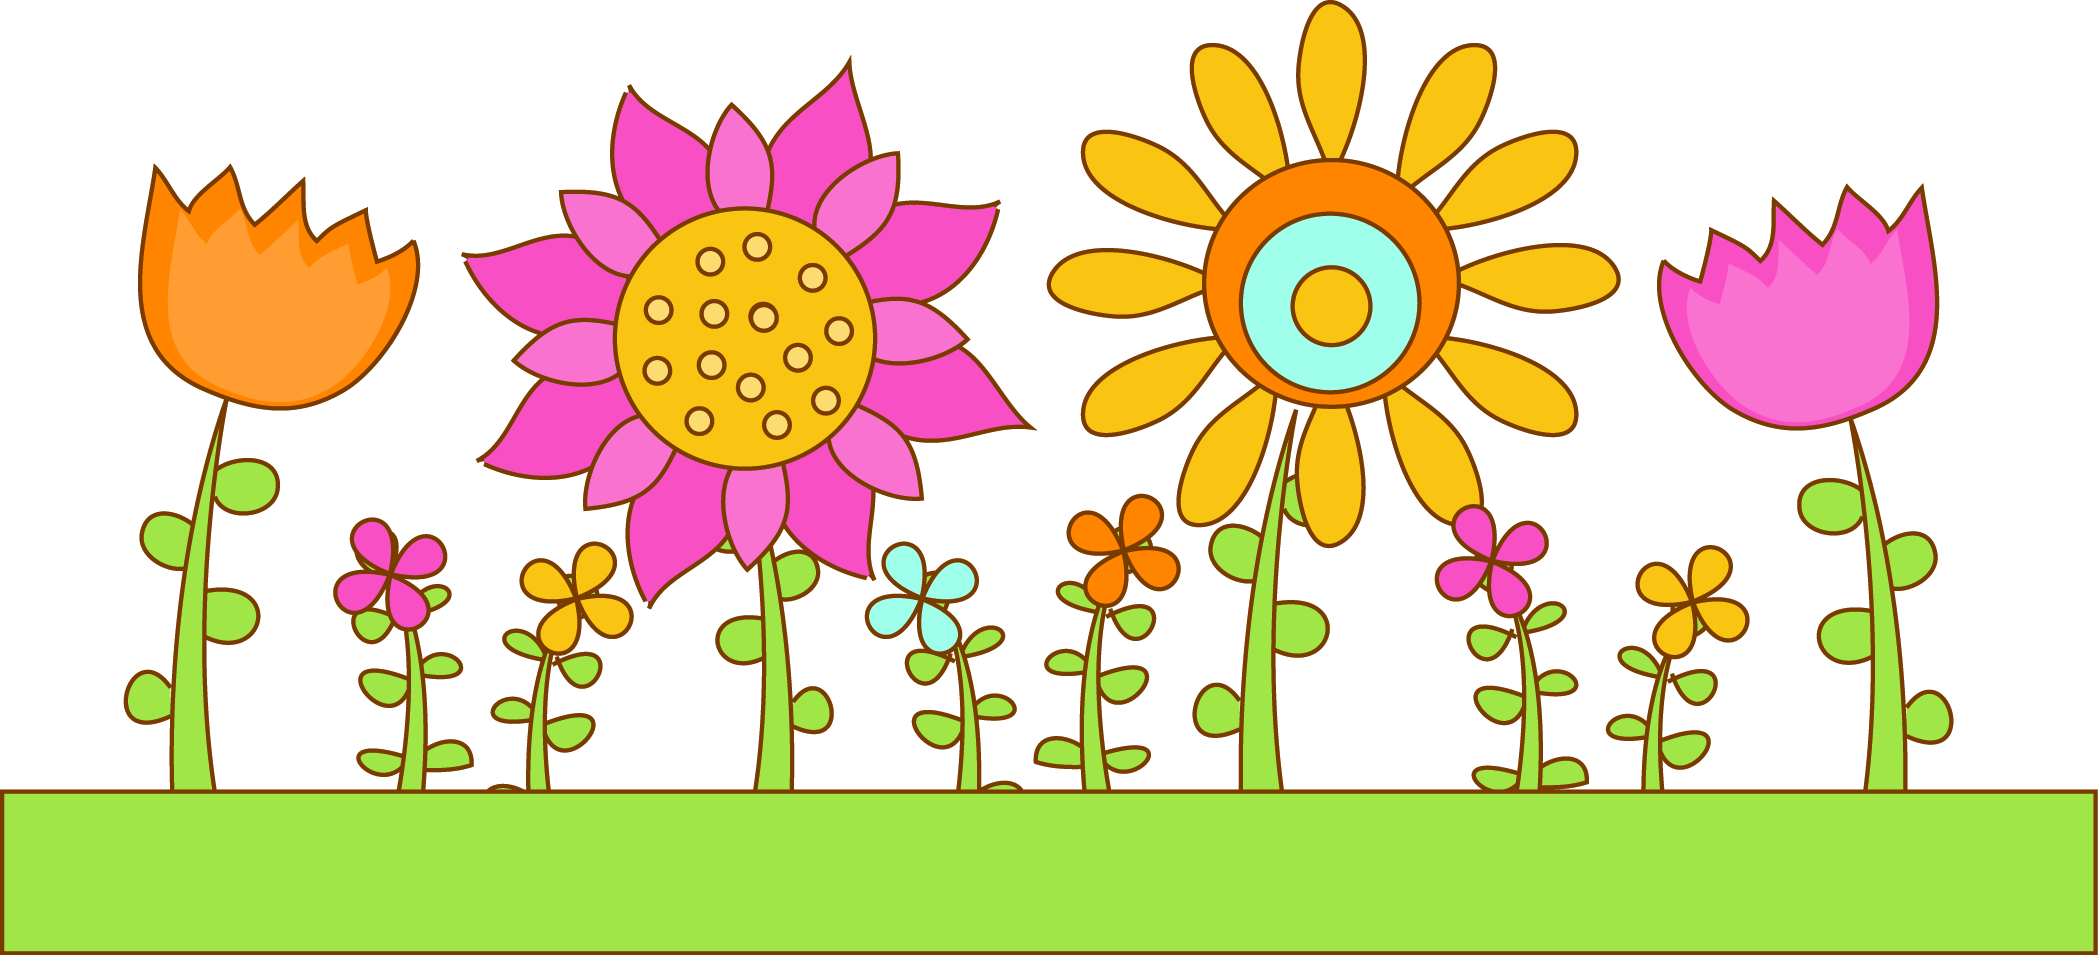 Garden clipart #4, Download drawings